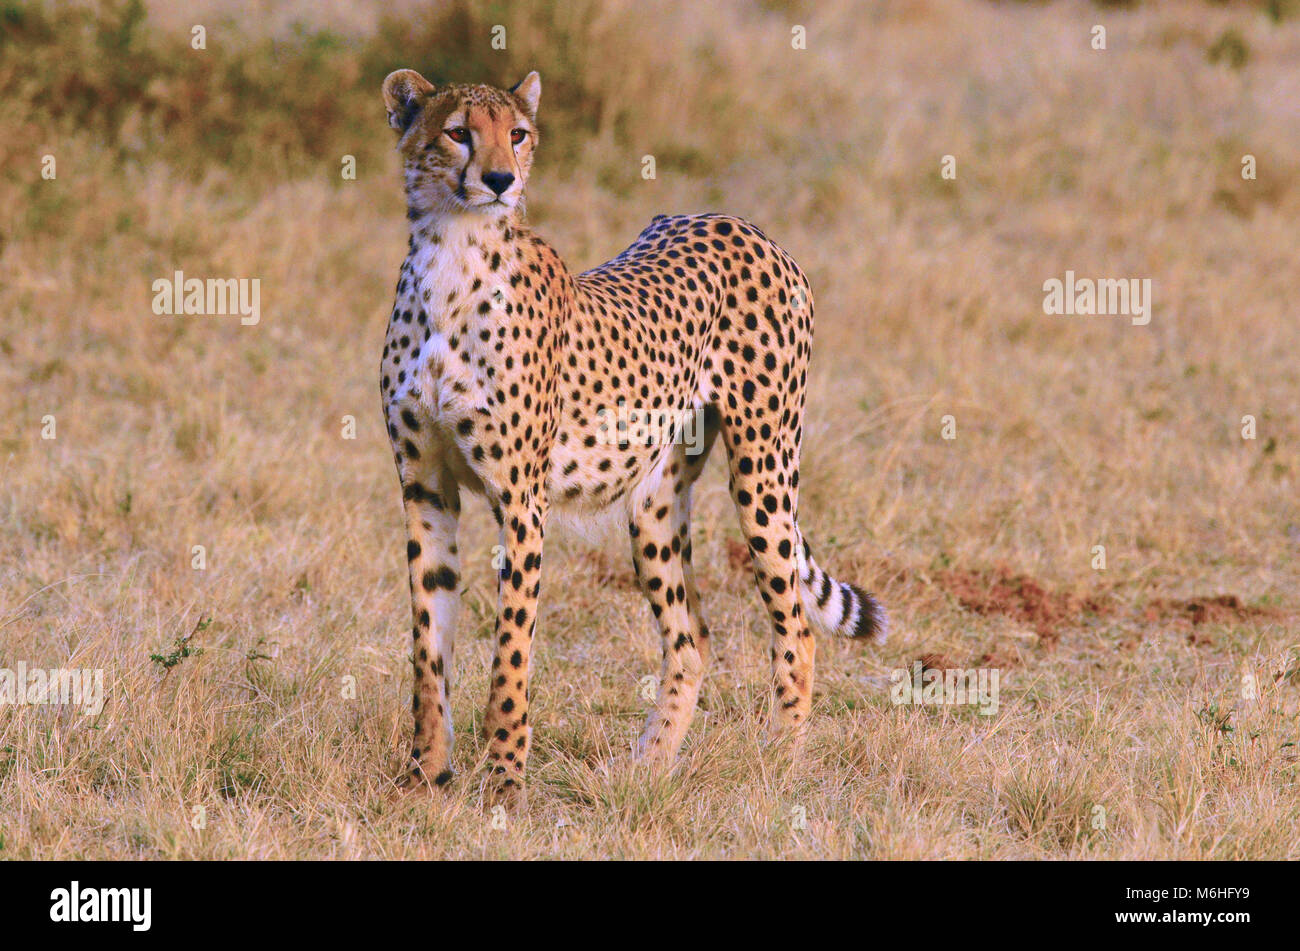 Serengeti National Park in Tanzania, is one of the most spectacular wildlife destinations on earth. Nervous cheetah - Stock Image